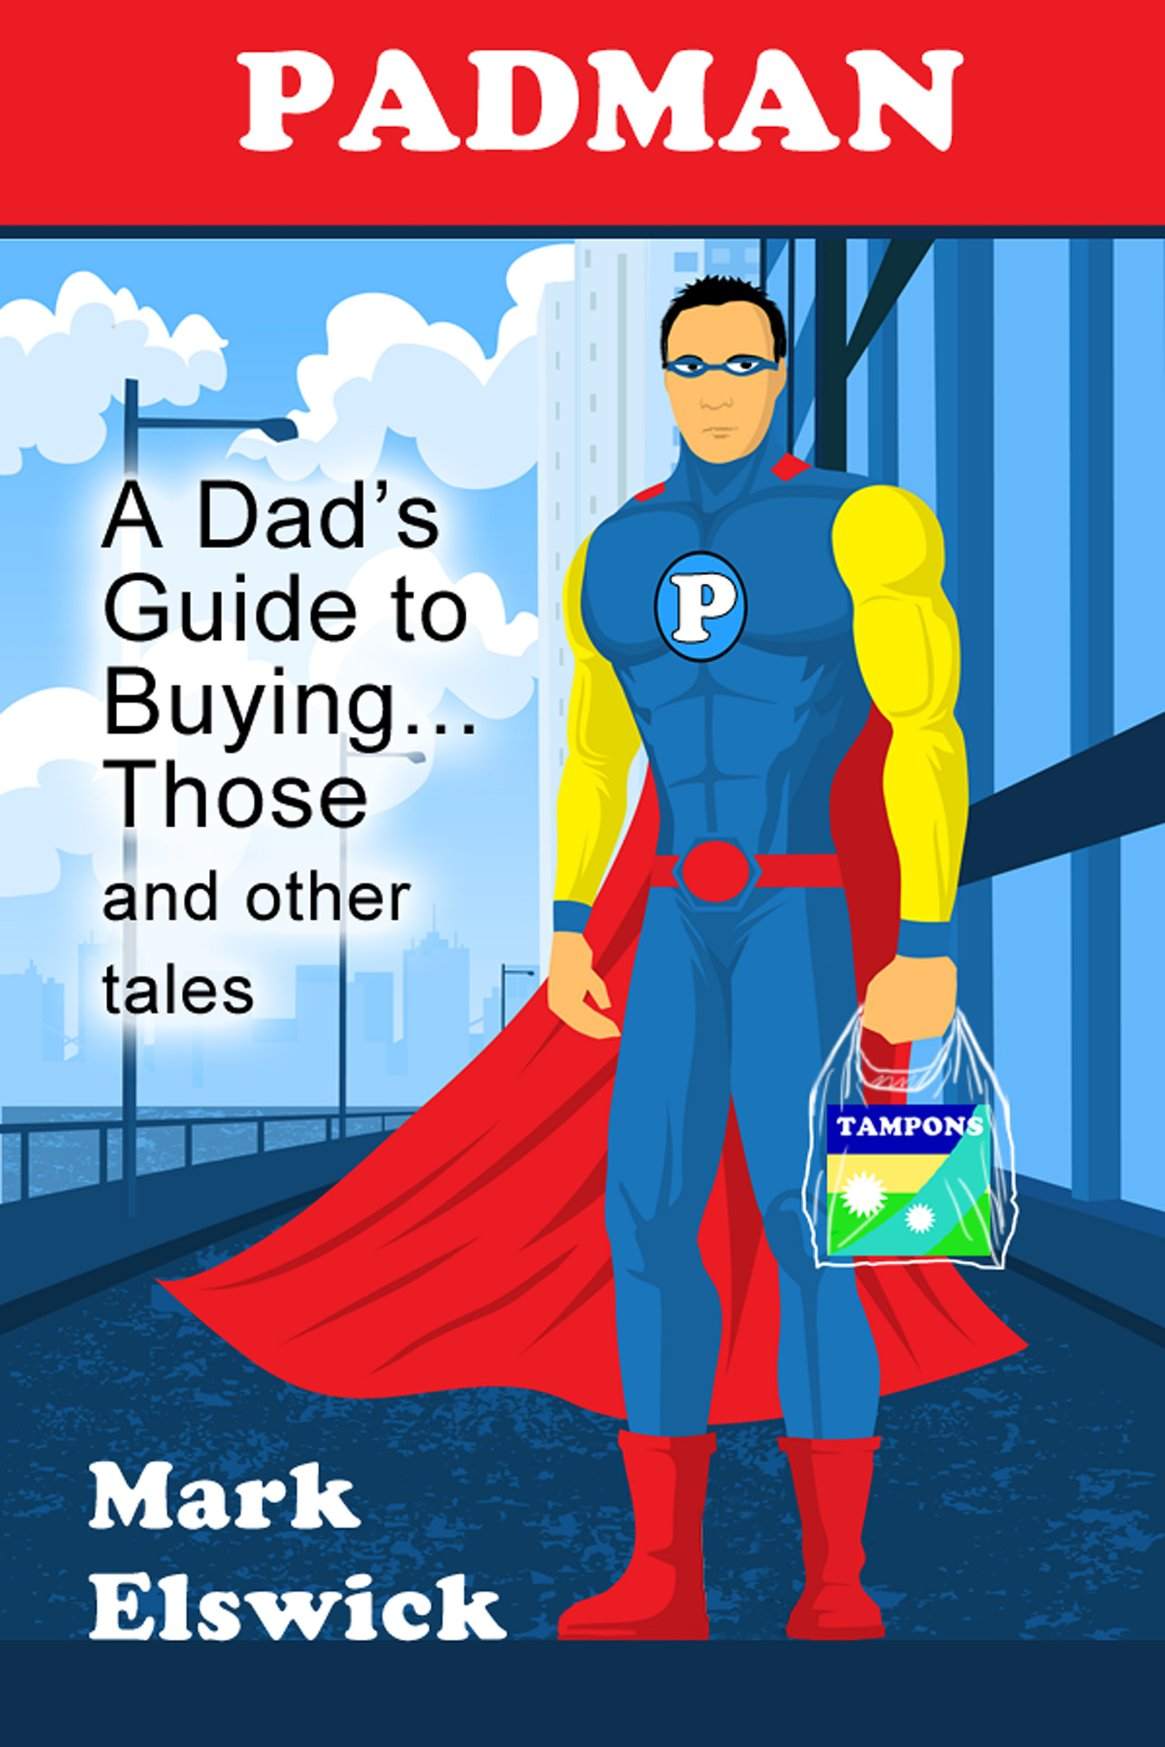 Padman: A Dad's Guide to Buying... Those and other tales 978-1-61599-115-0